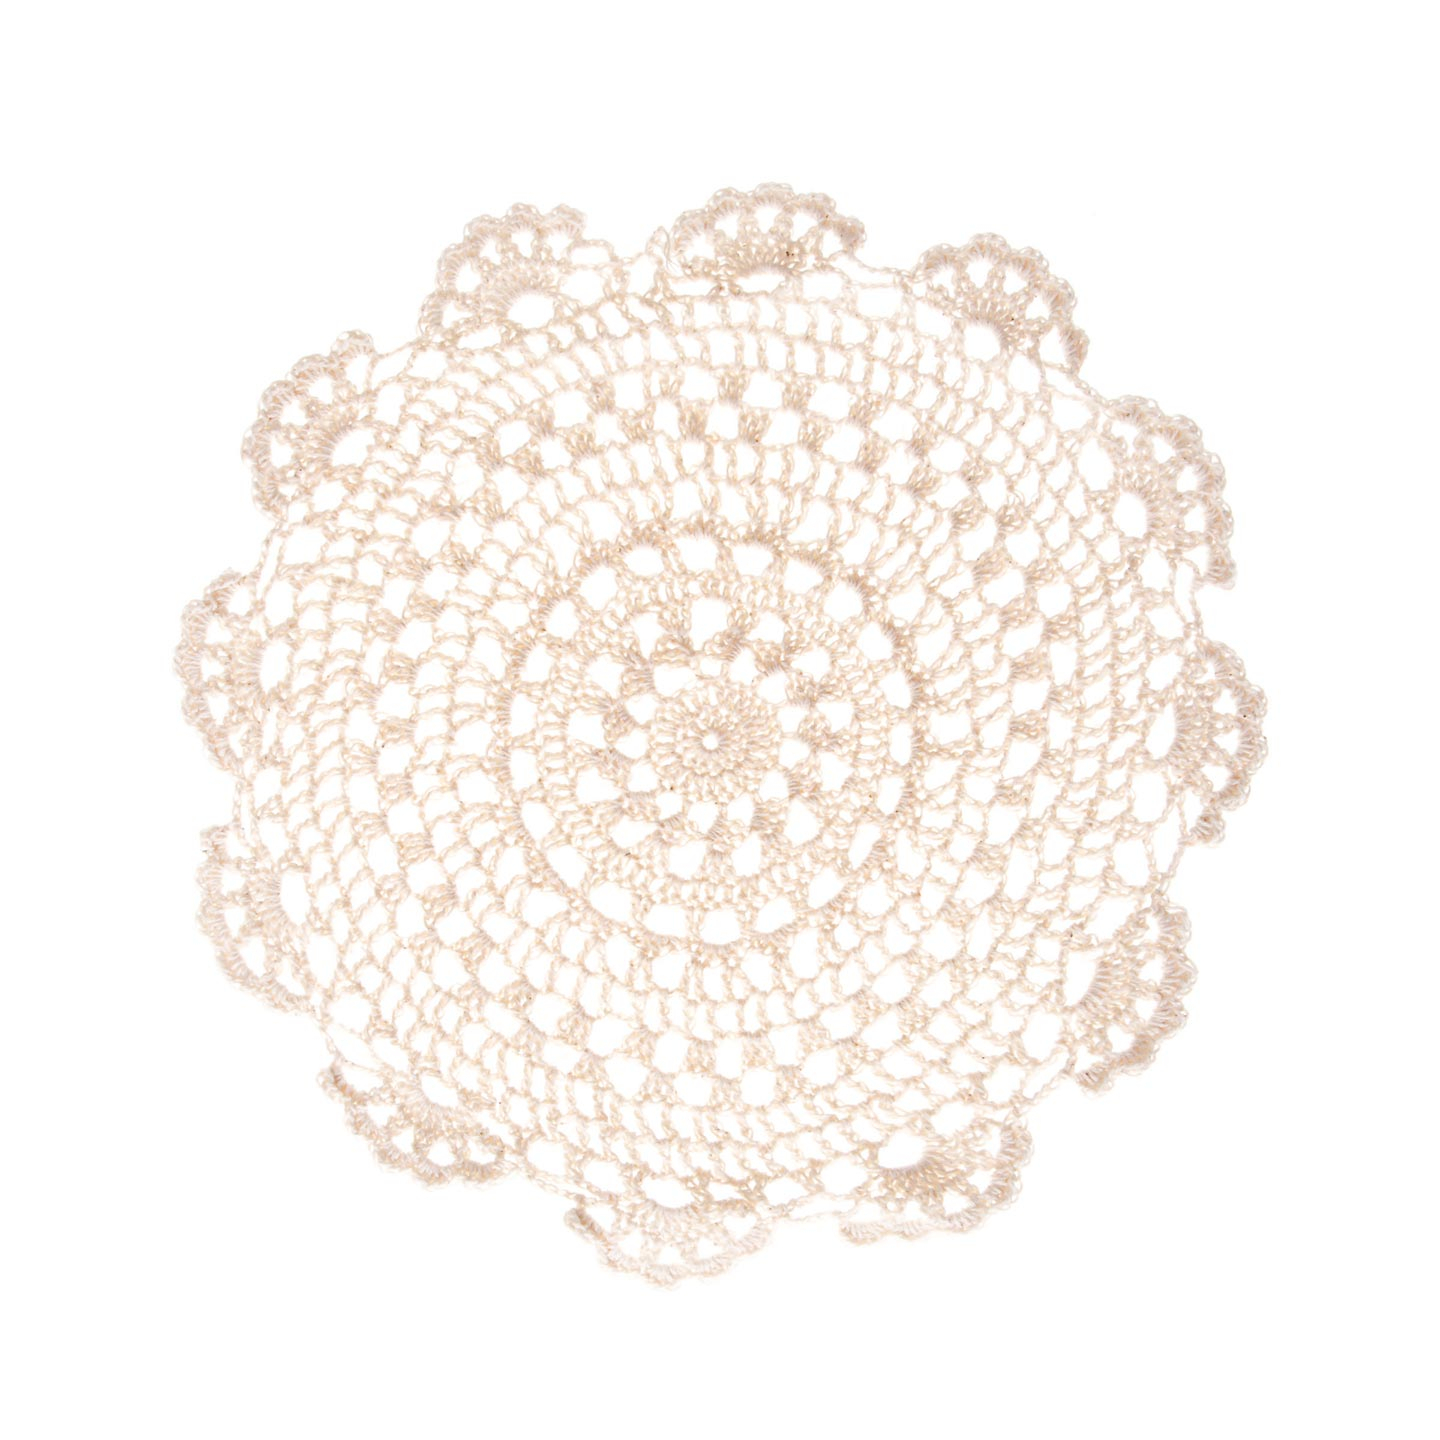 3 Pretty Designs of Craft Paper Doilies Craft Doilies 10 Inch Ecru Lace Doily